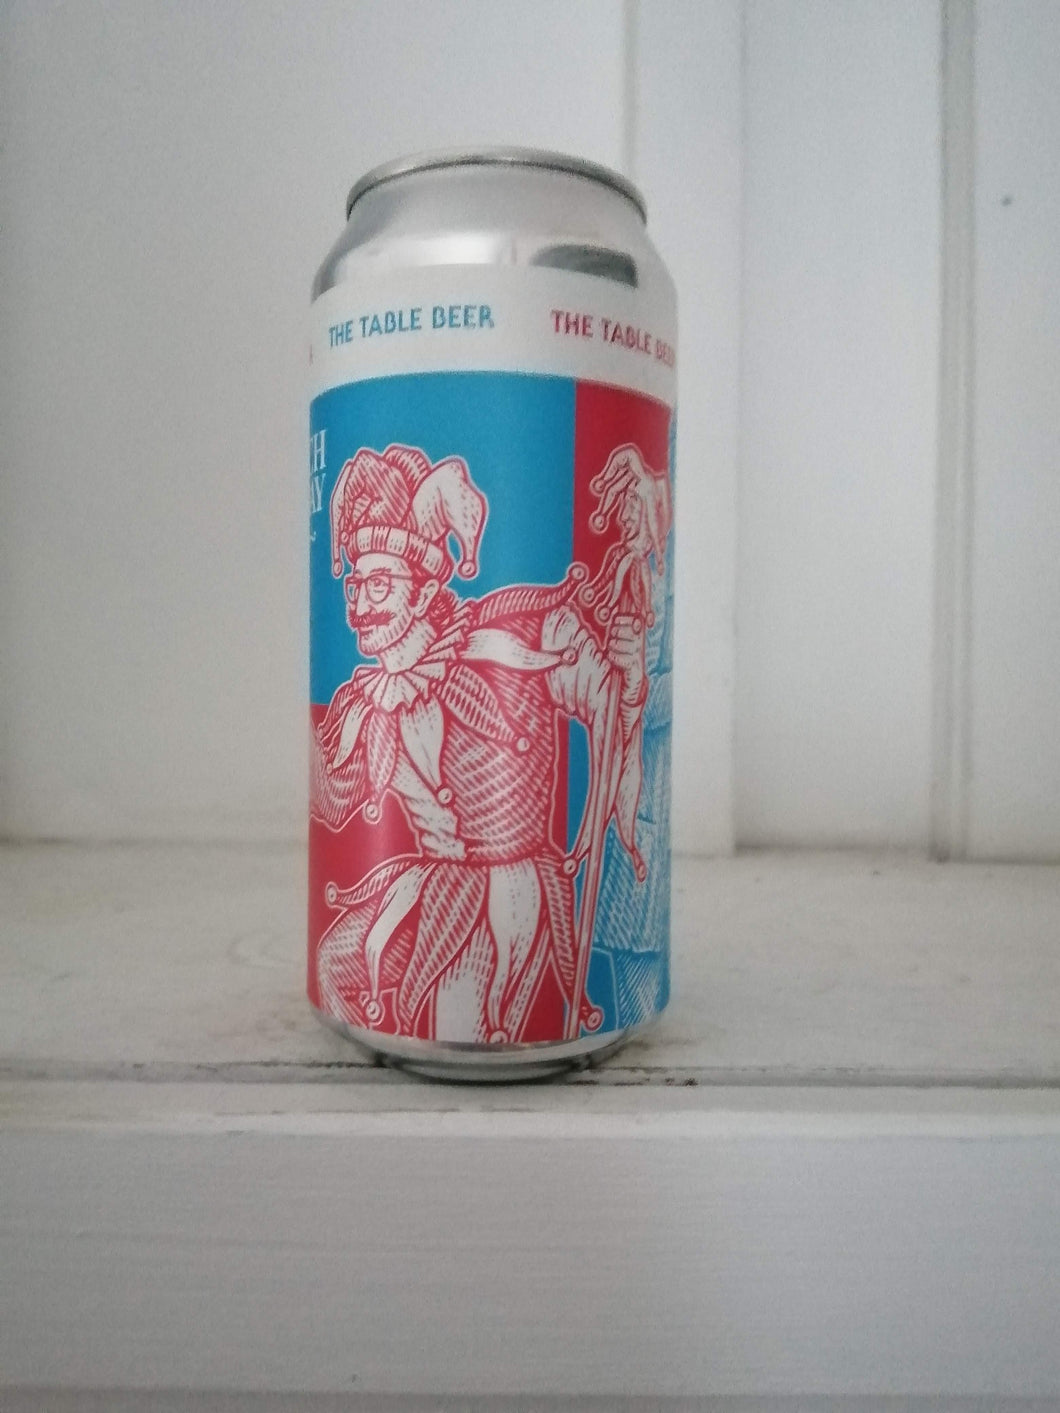 Anspach & Hobday The Table Beer 2.7% (440ml can)